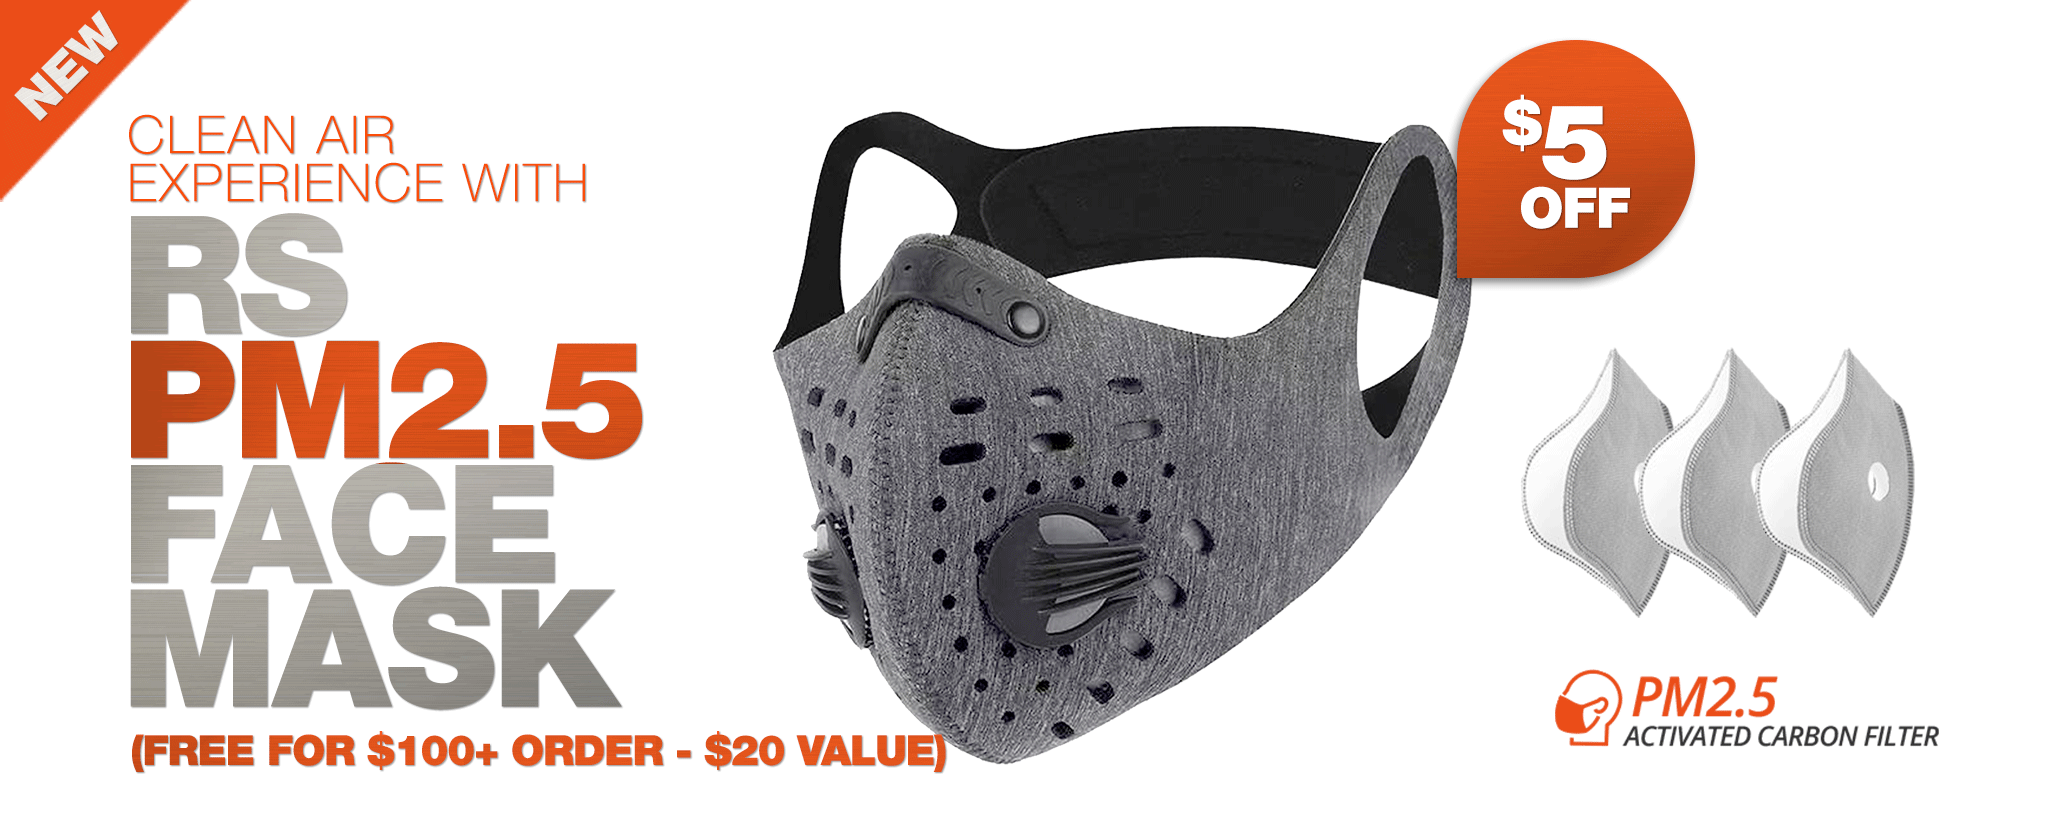 RS PM2.5 Face Mask - $5 OFF (FREE FOR $100+ ORDER - $20 value)